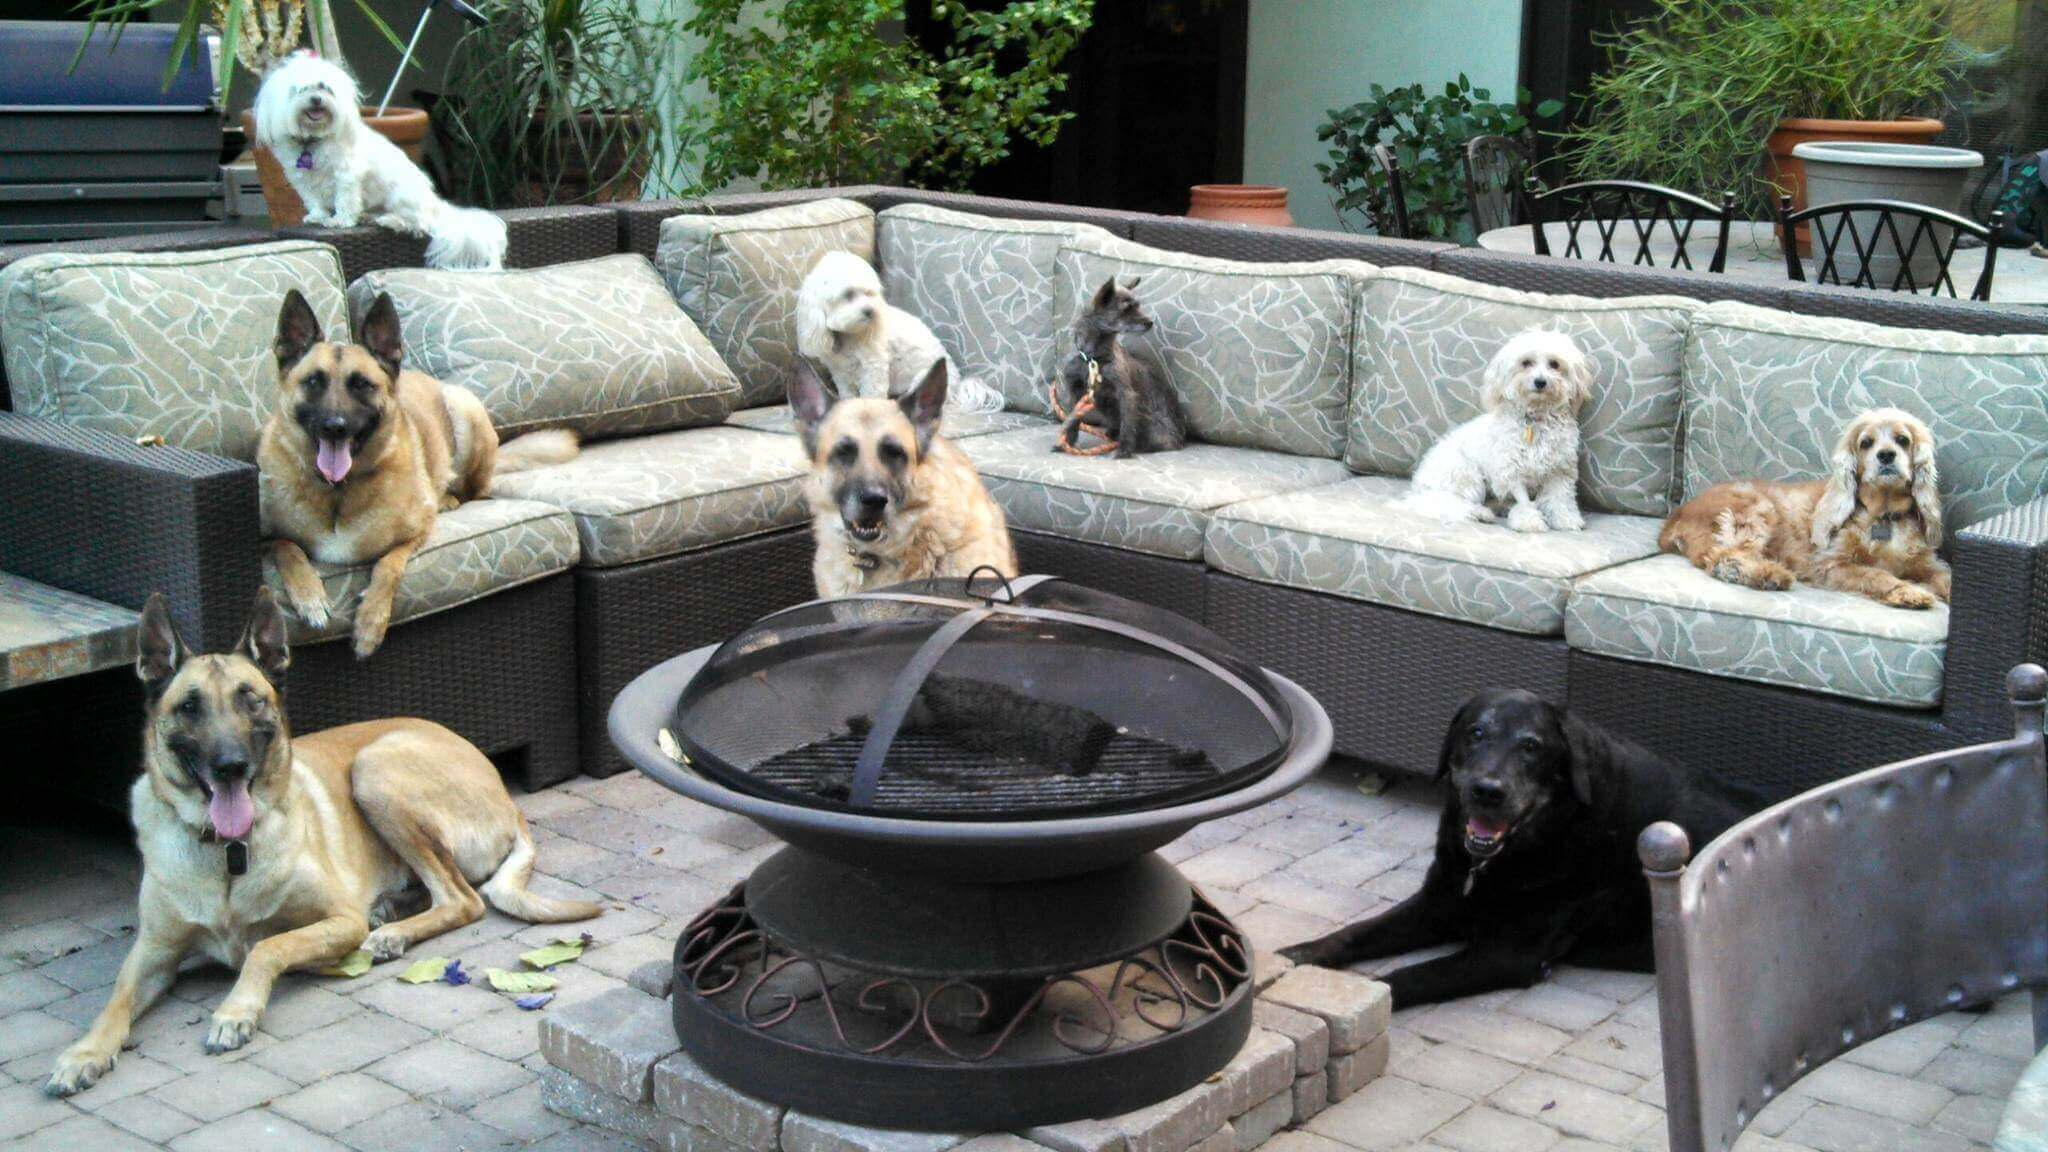 Dogs on Patio Furniture